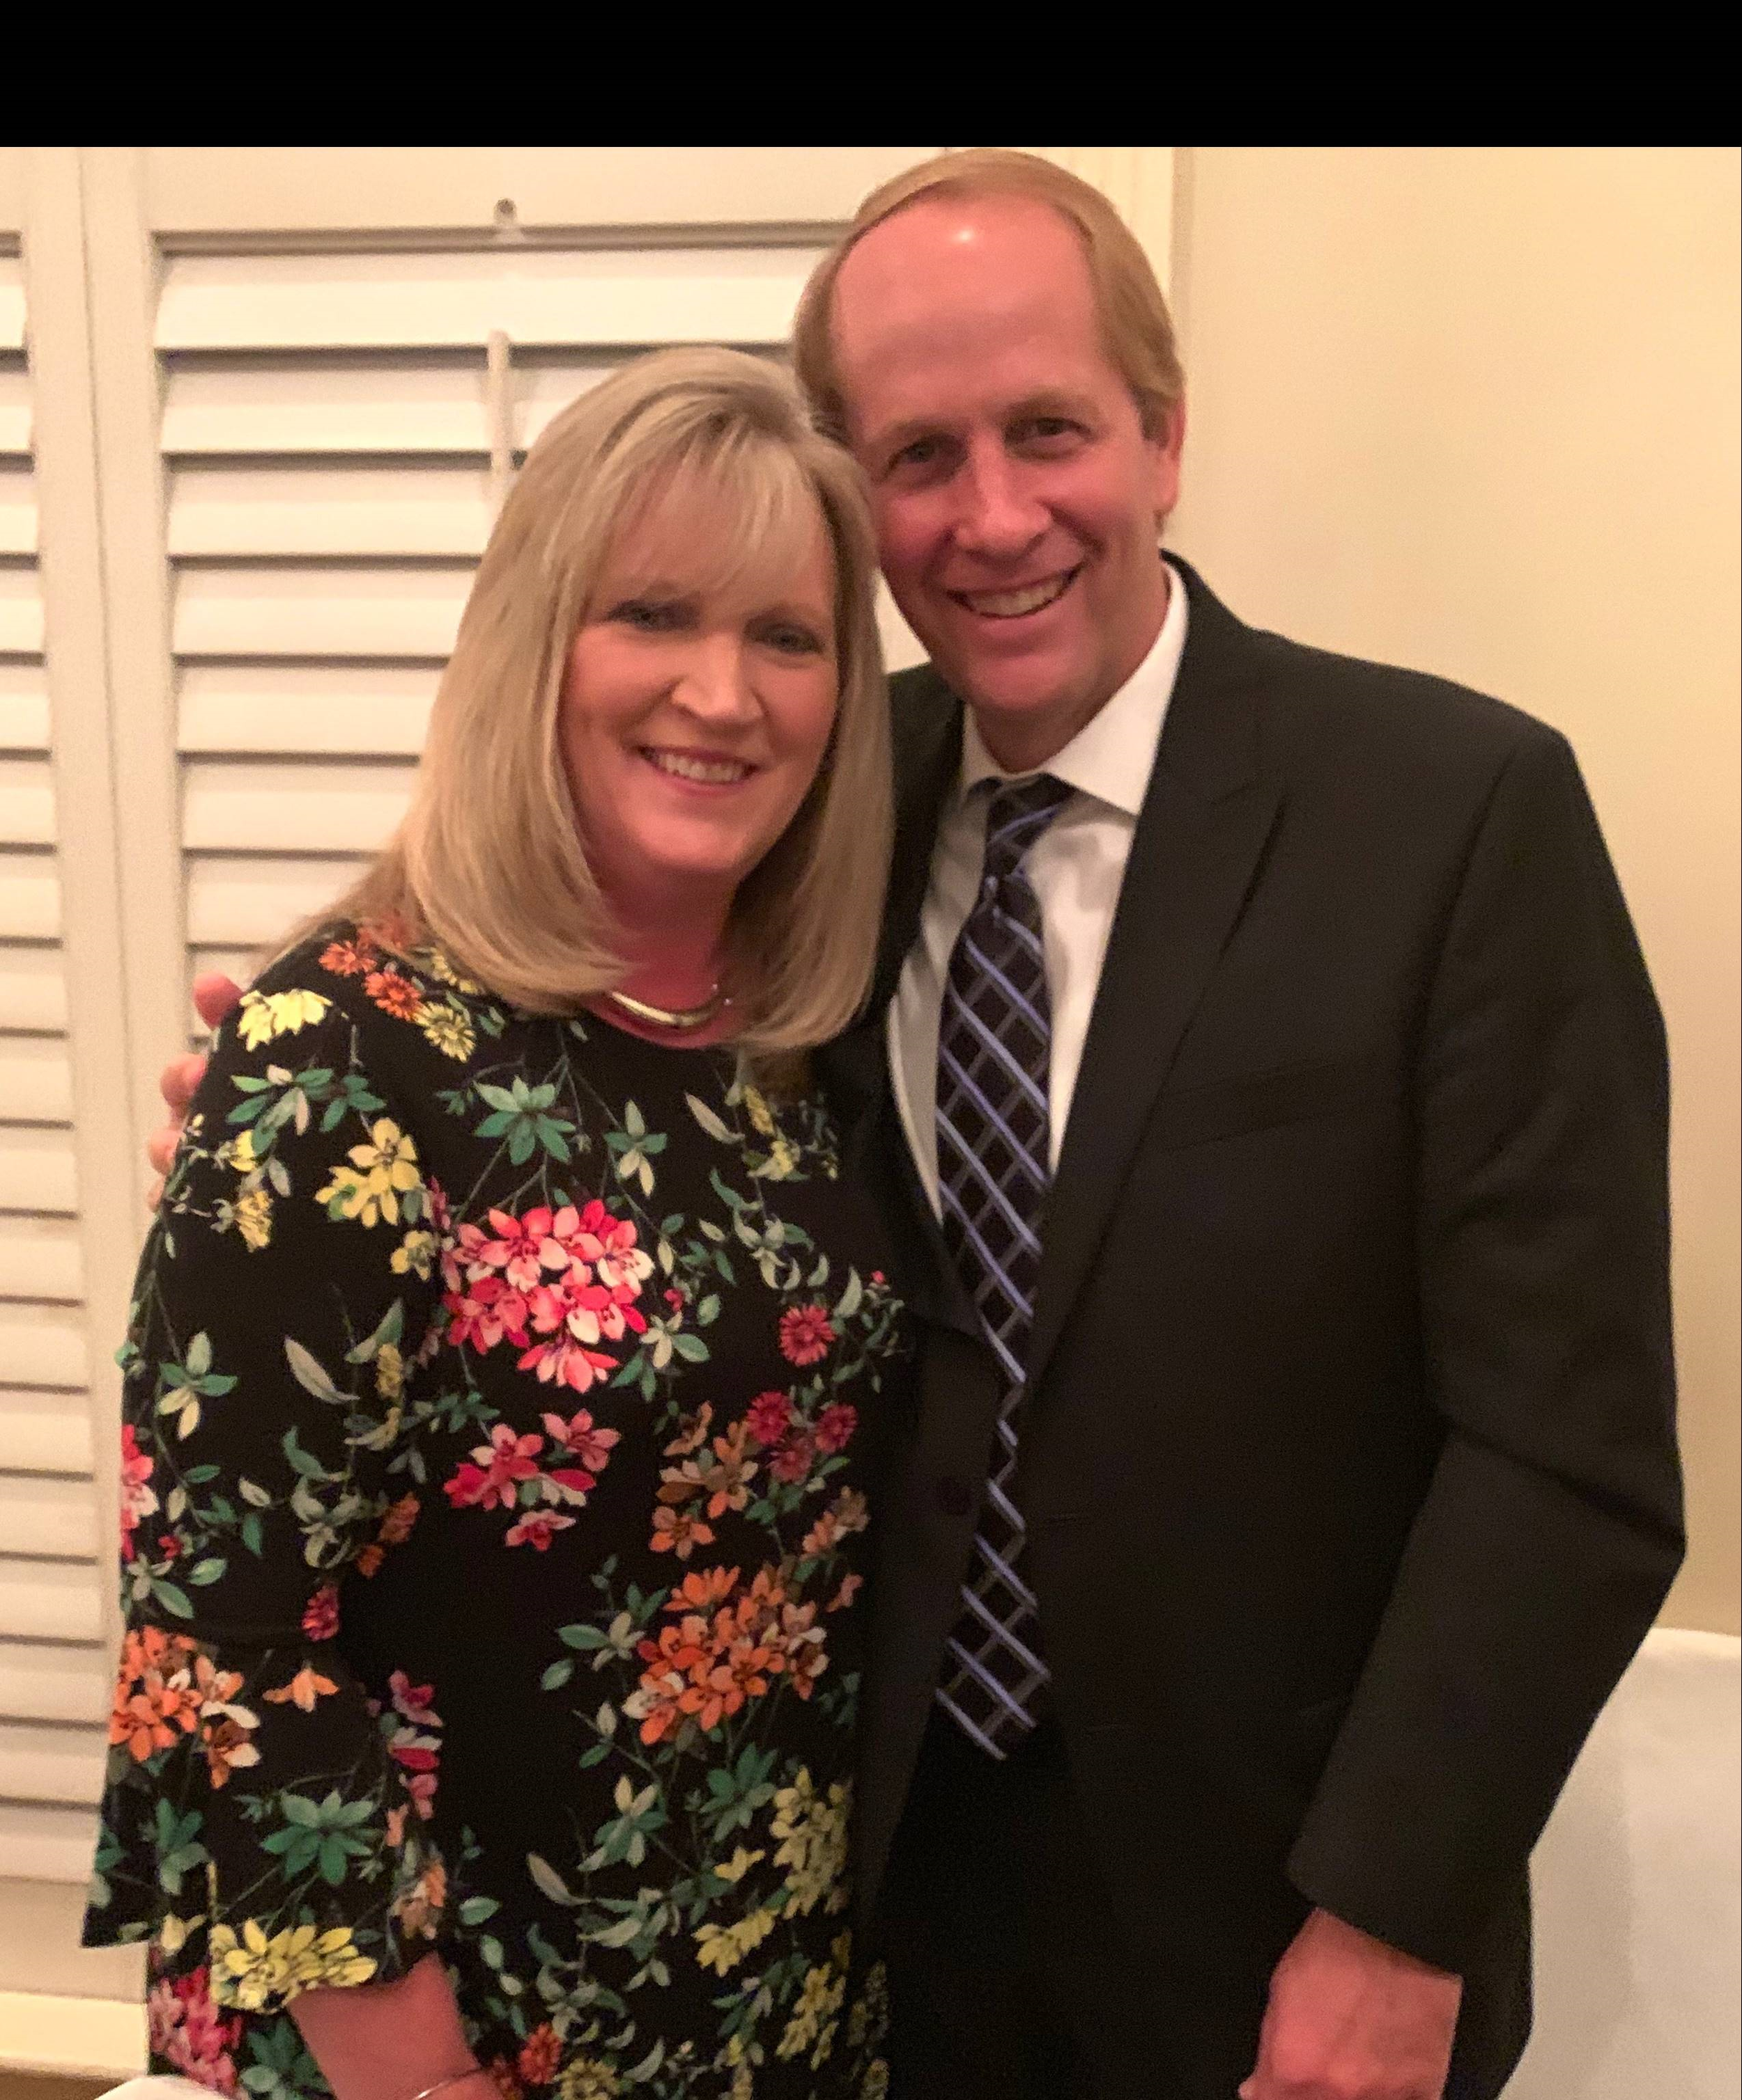 Gregg and Wendy Mann